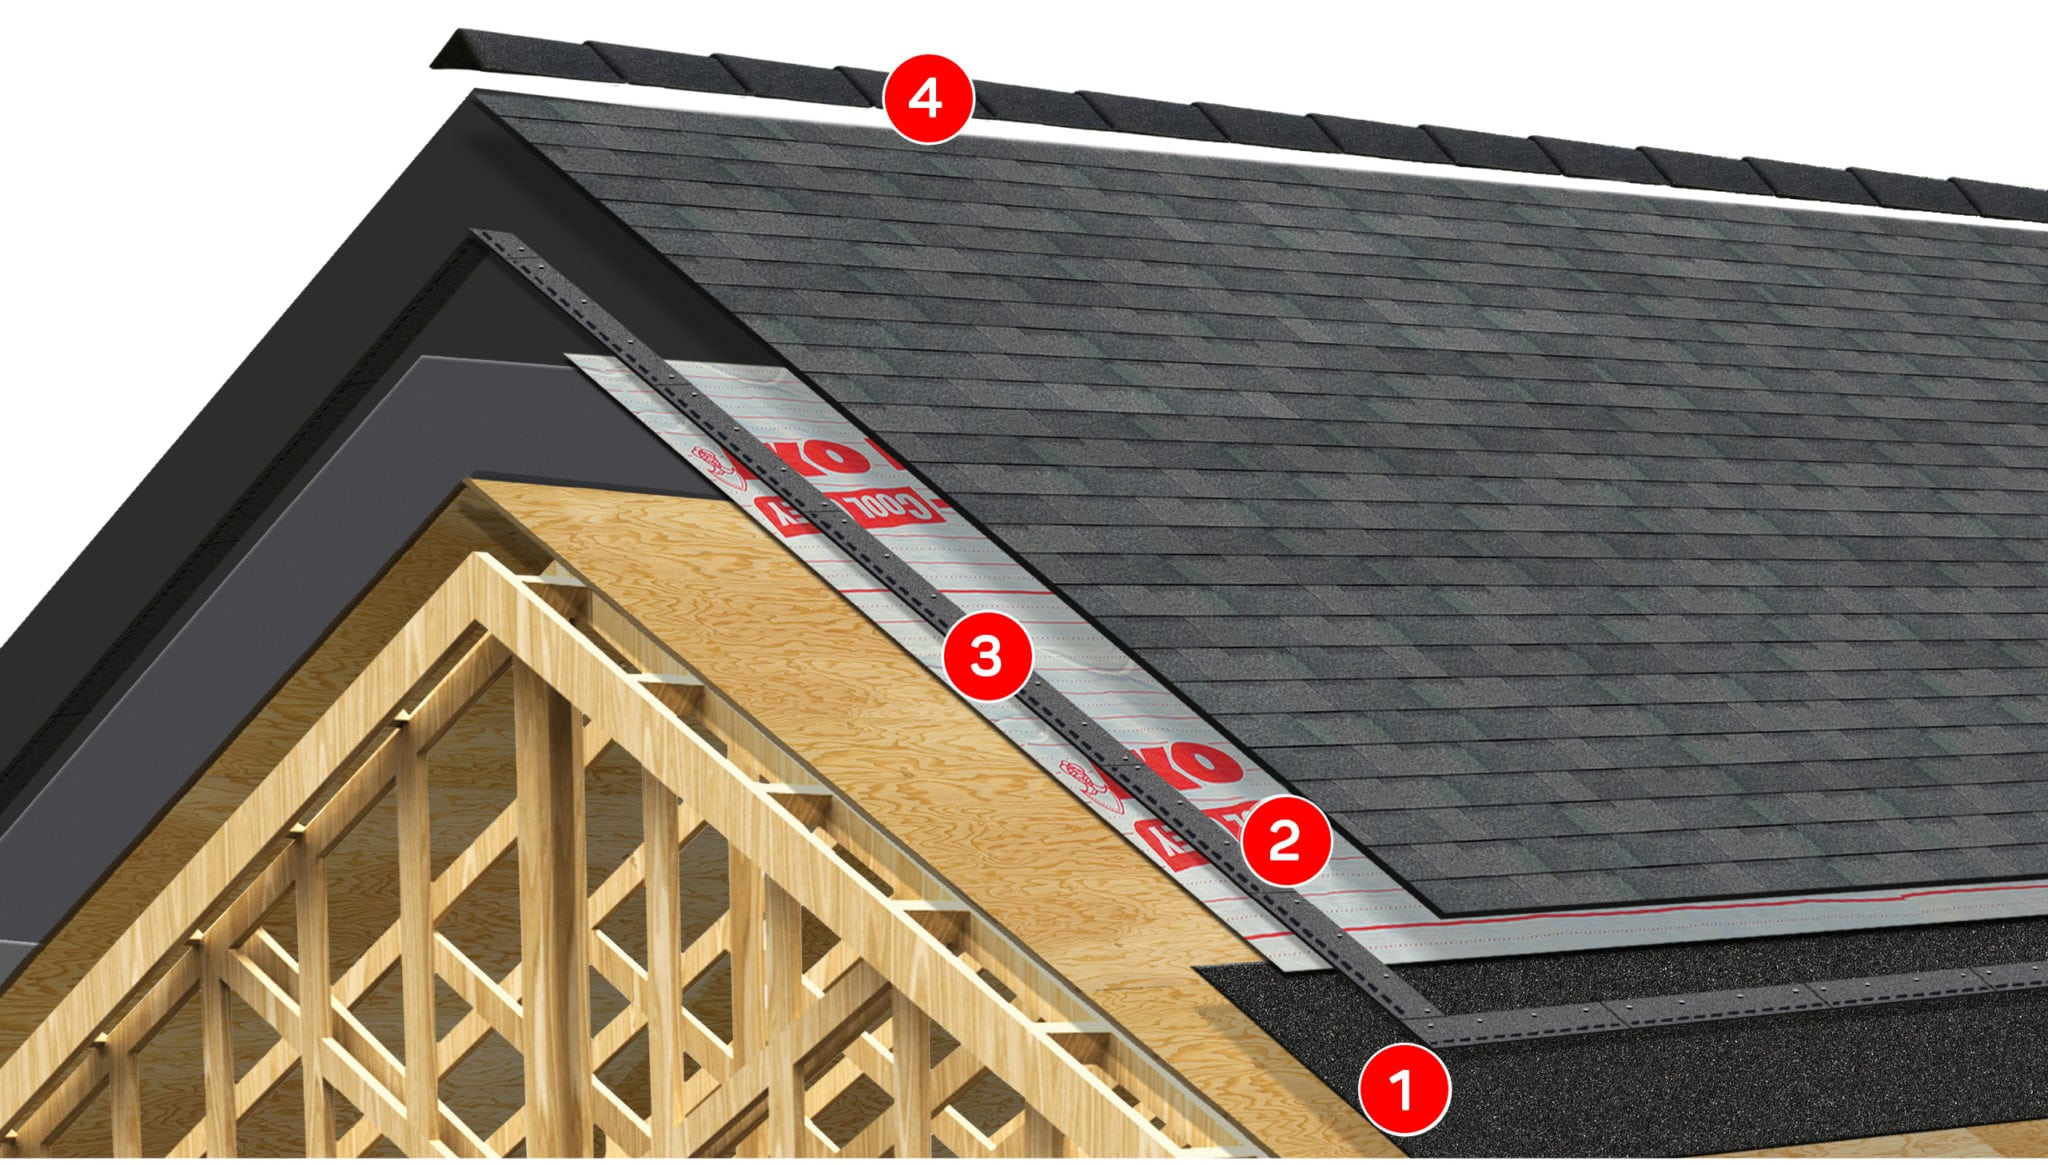 iko_roofing_product